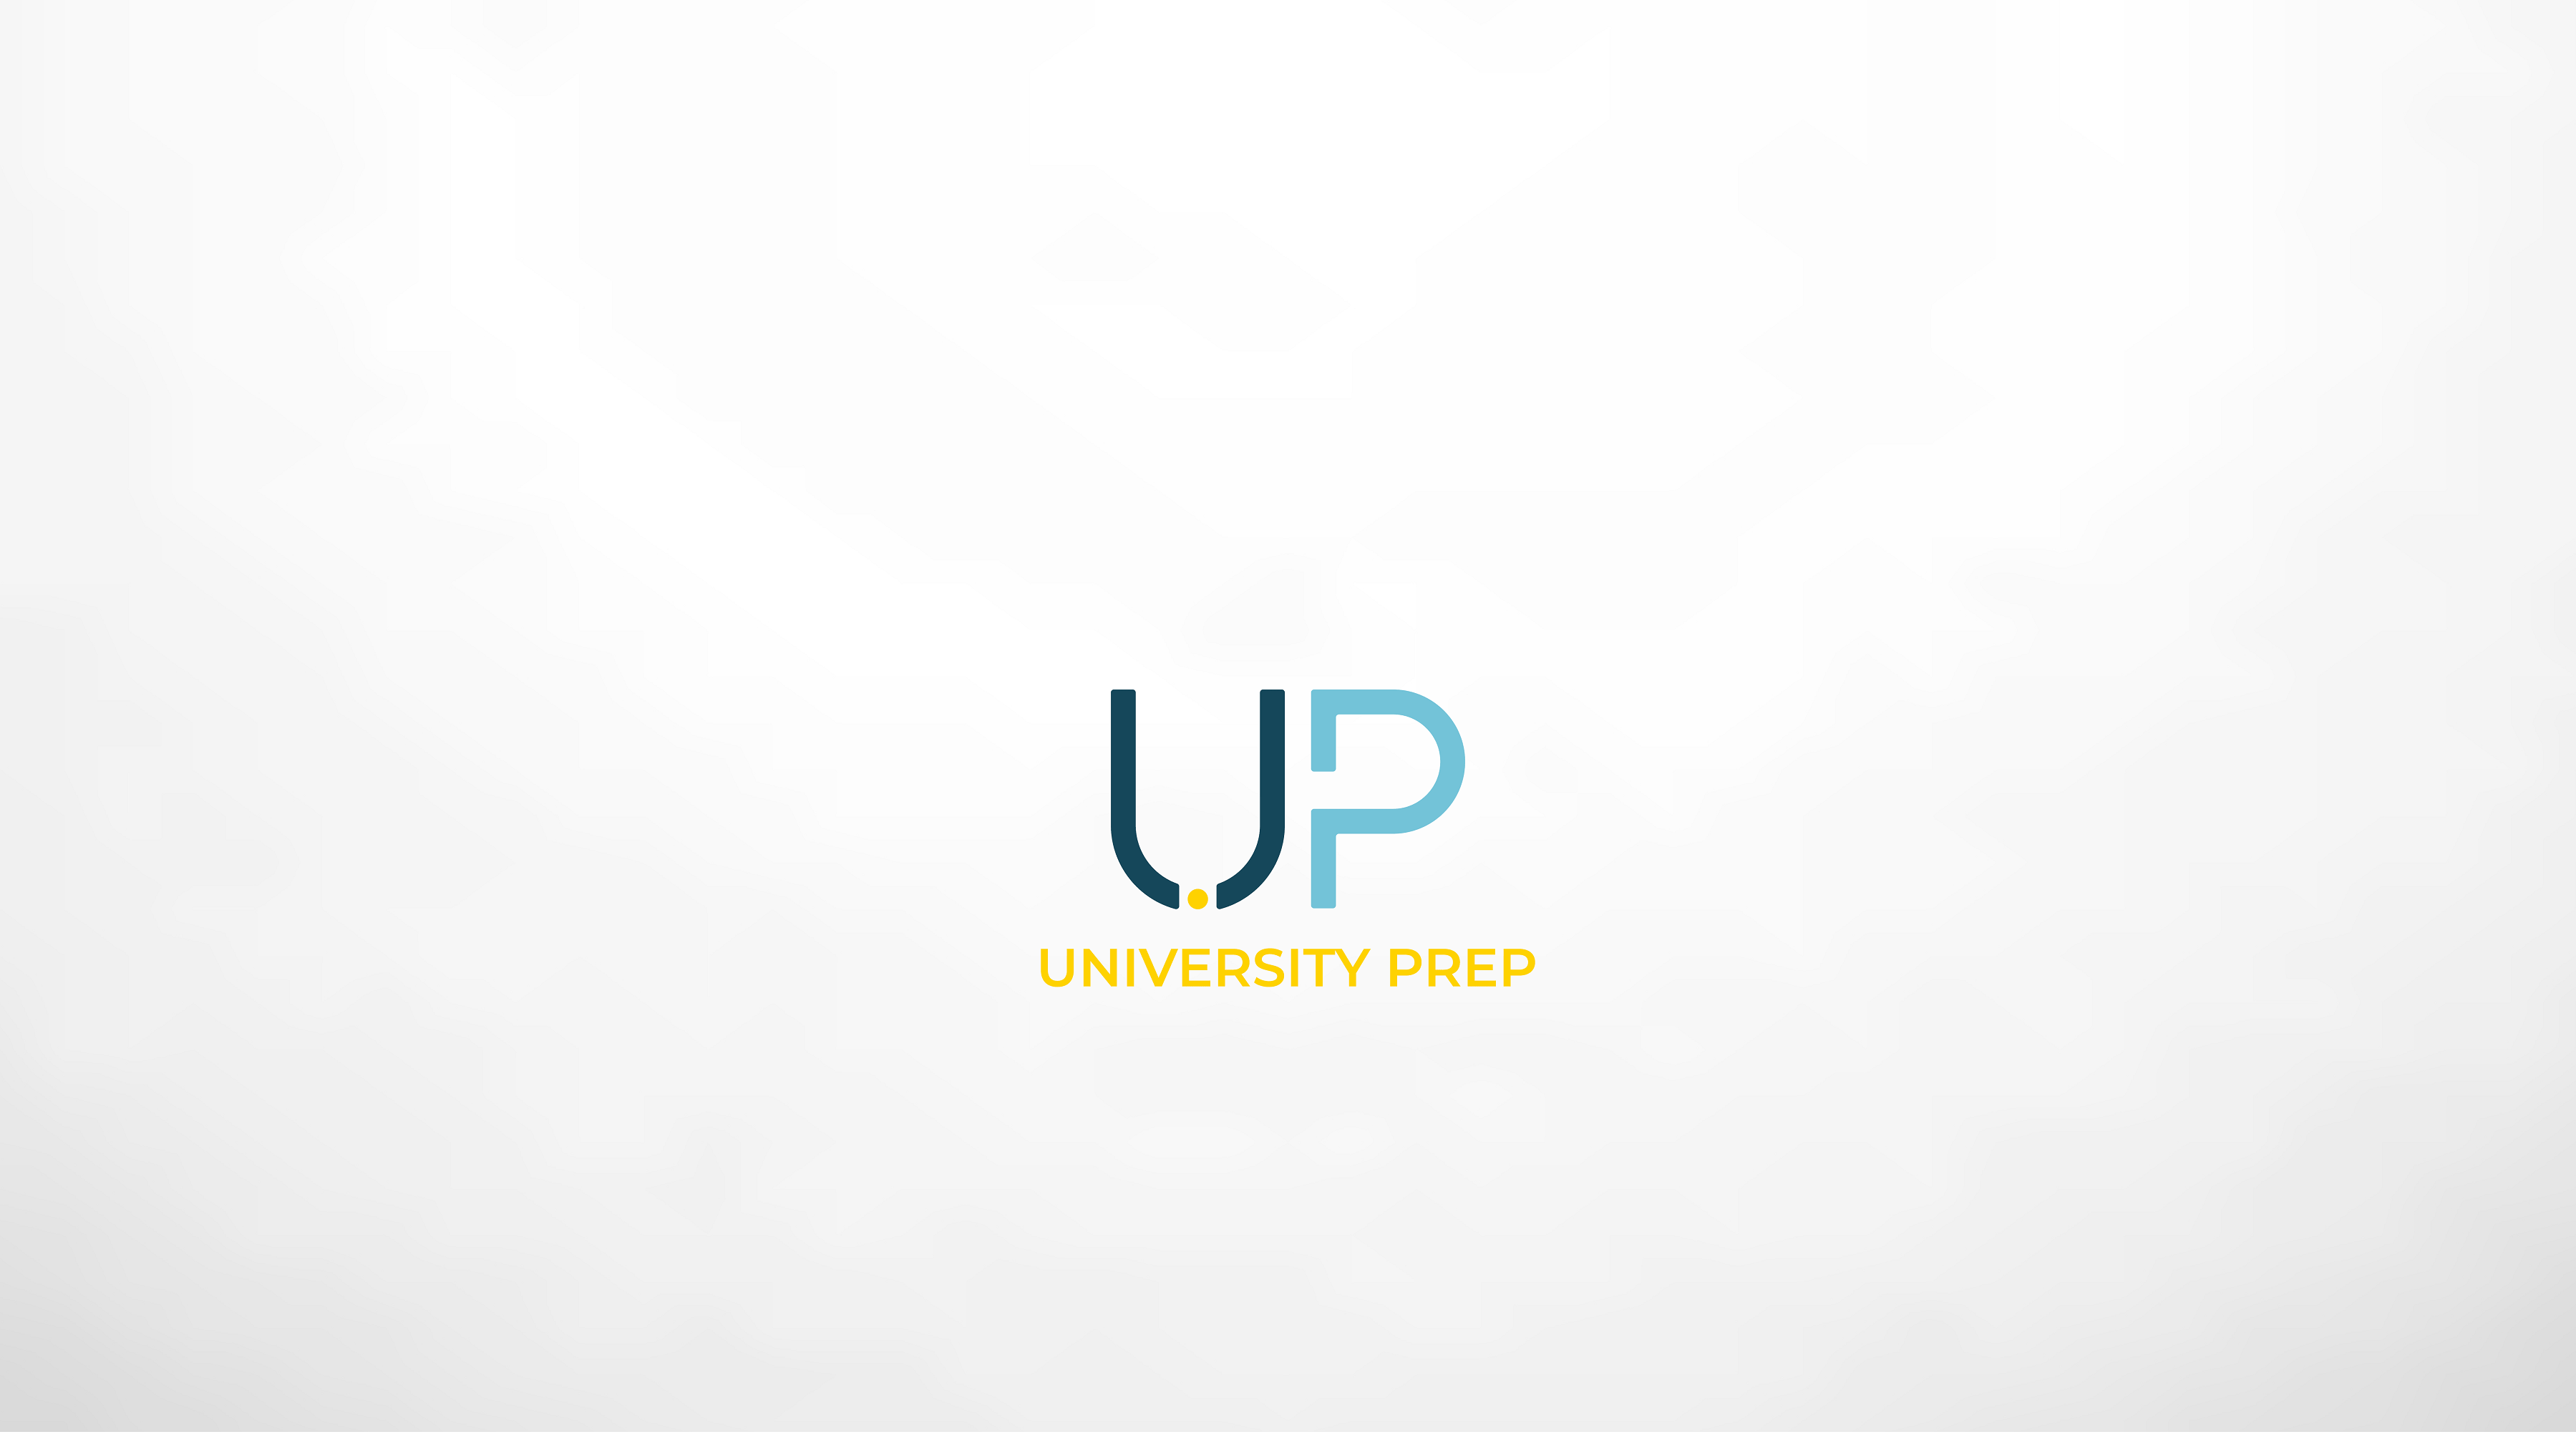 University Prep Logo - Michael Karl Studio - Atlanta GA Voice Coach - slider image 1d